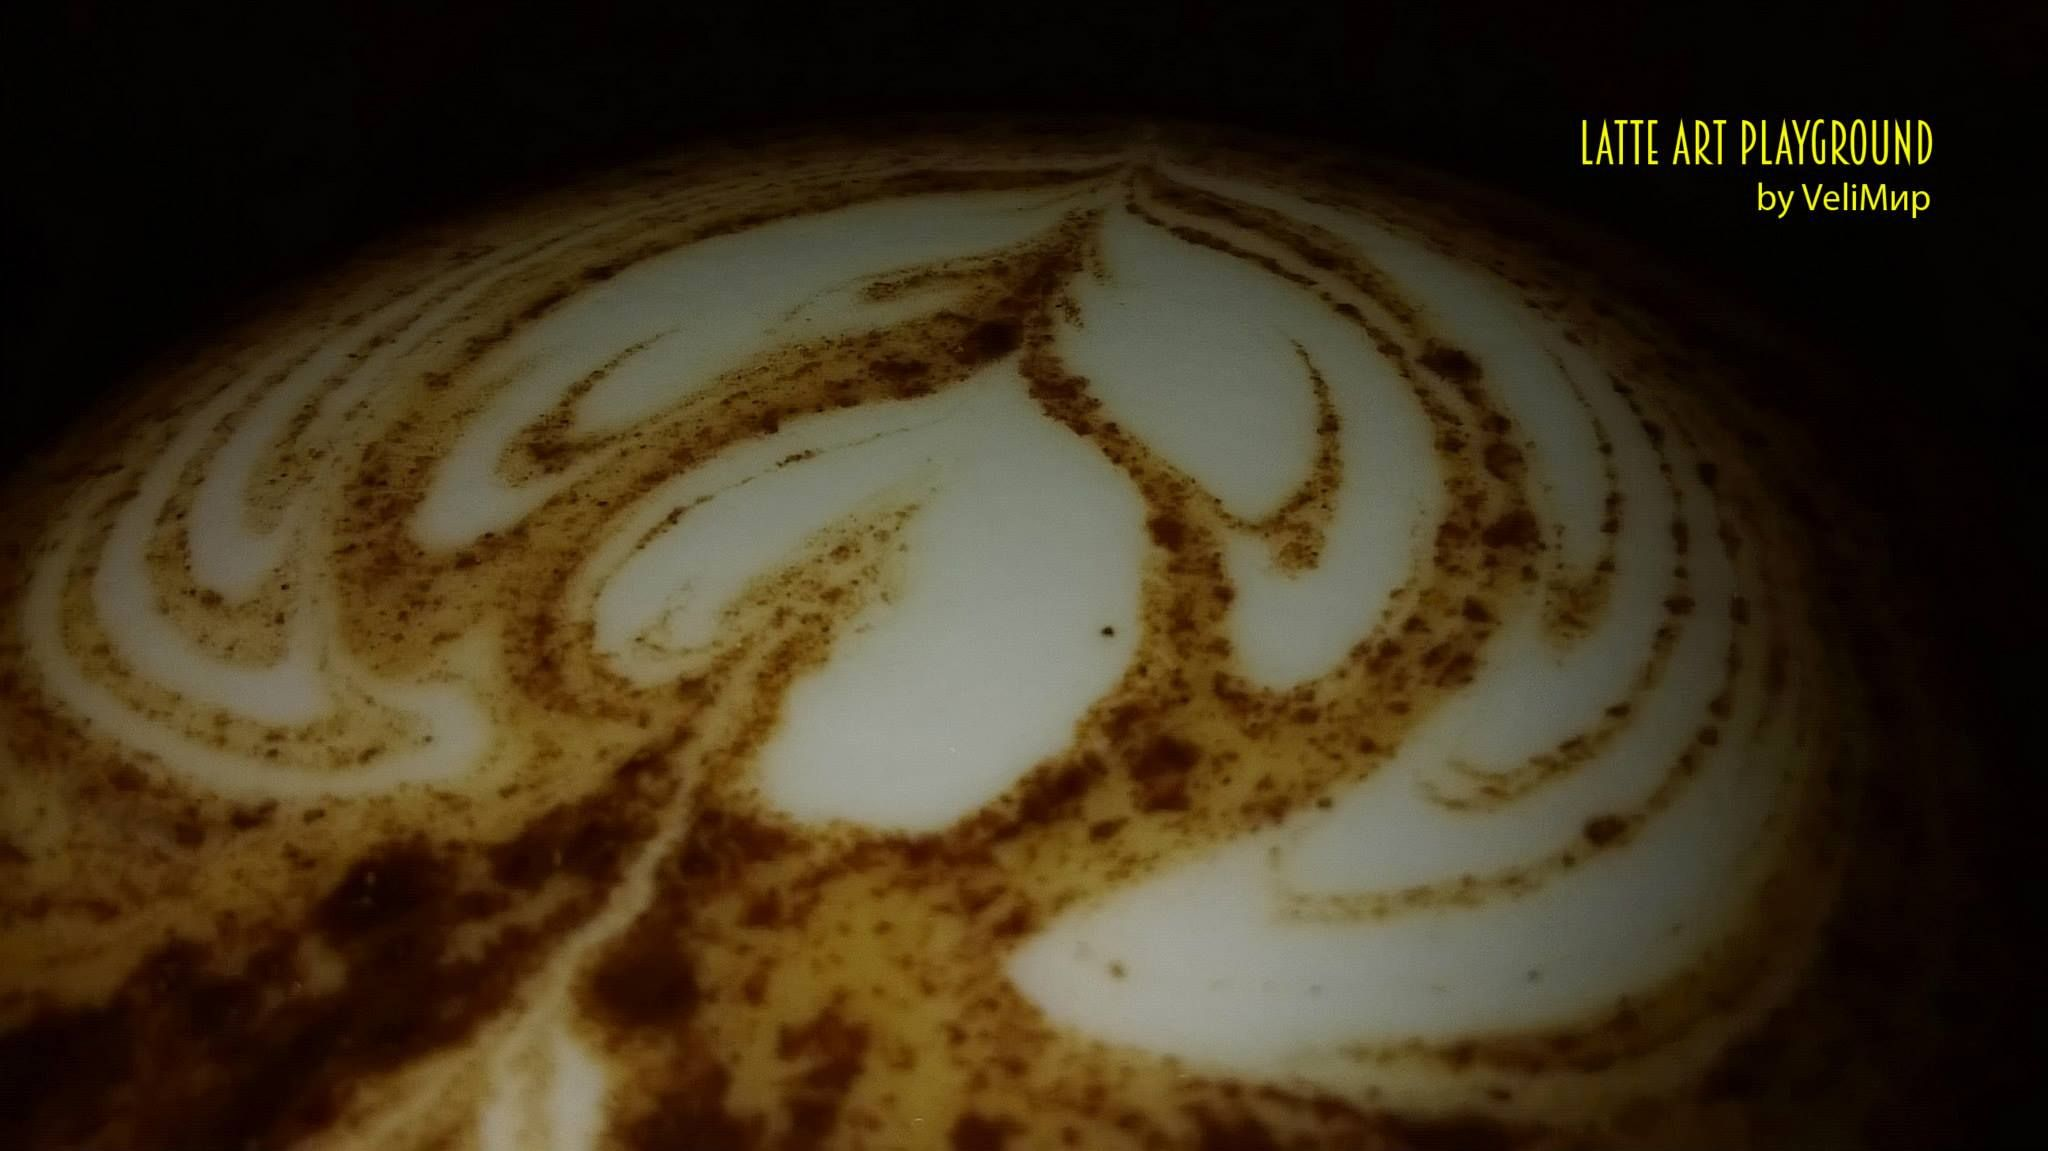 creamy like a cocoa cloud  #kimbo #coffee #art